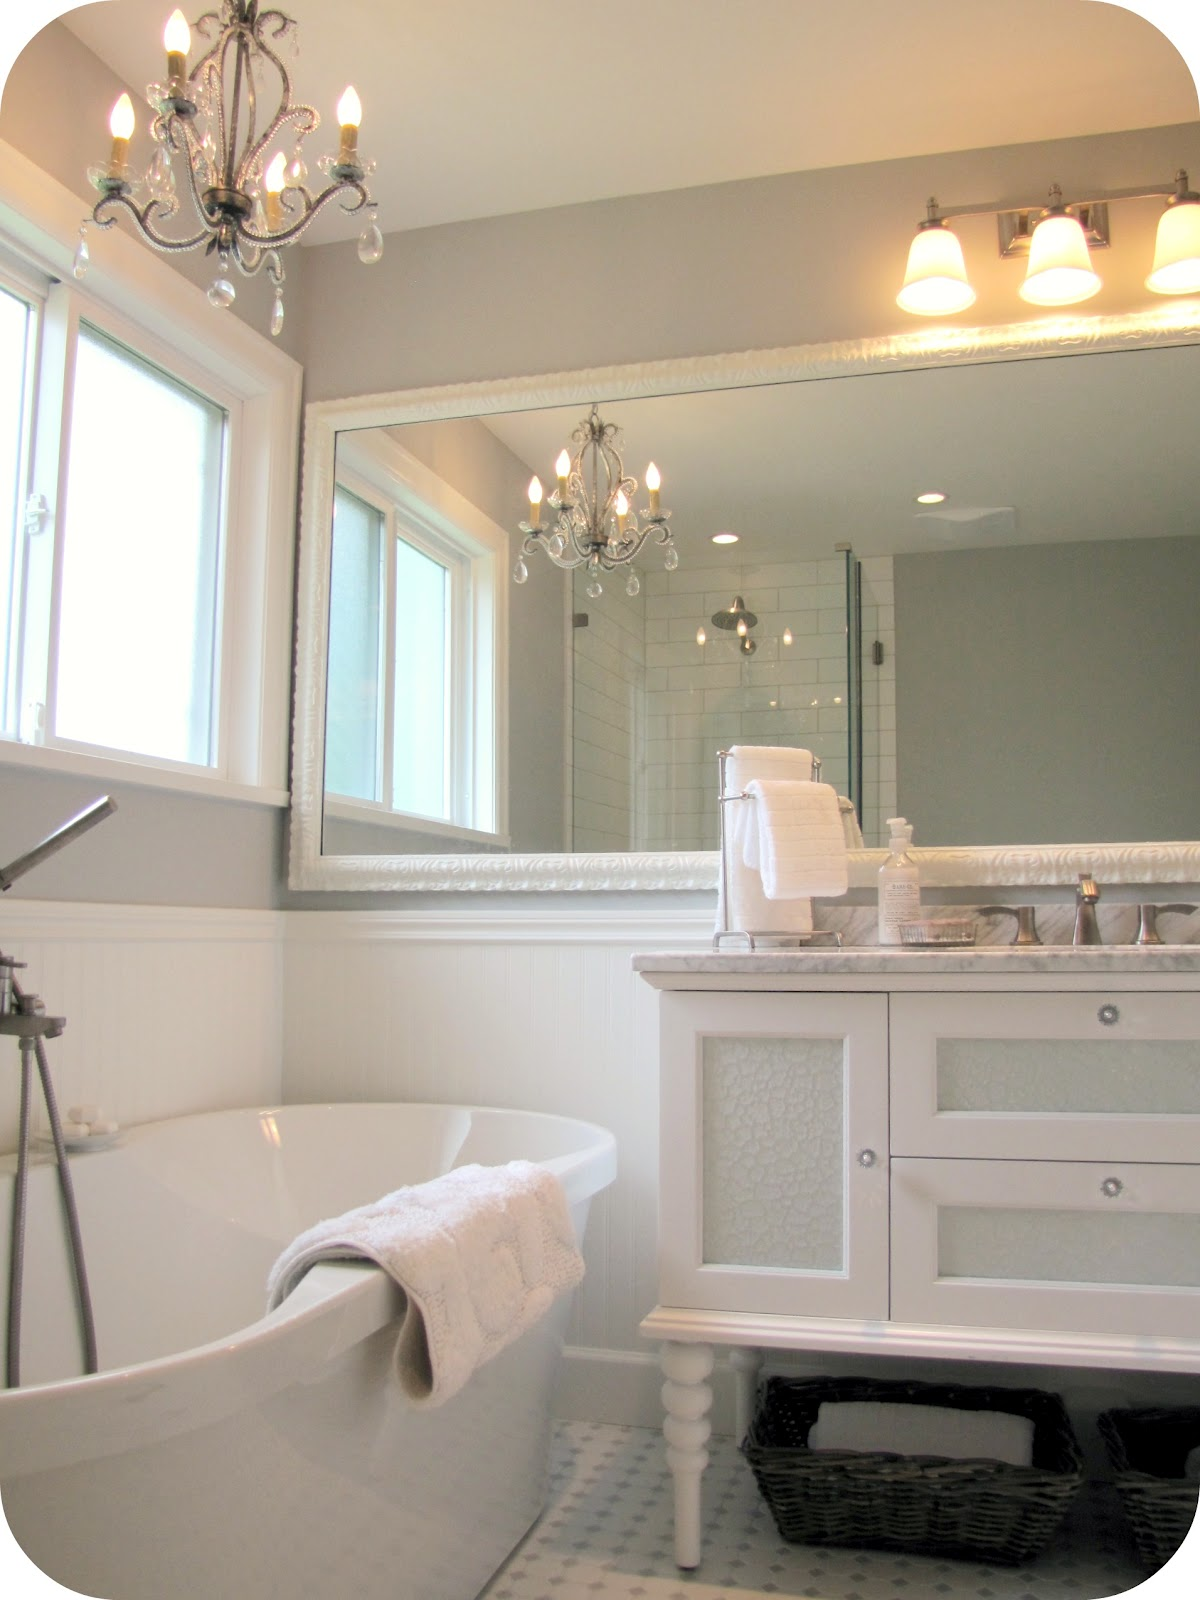 My House of Giggles: White and Grey Bathroom Renovation ...